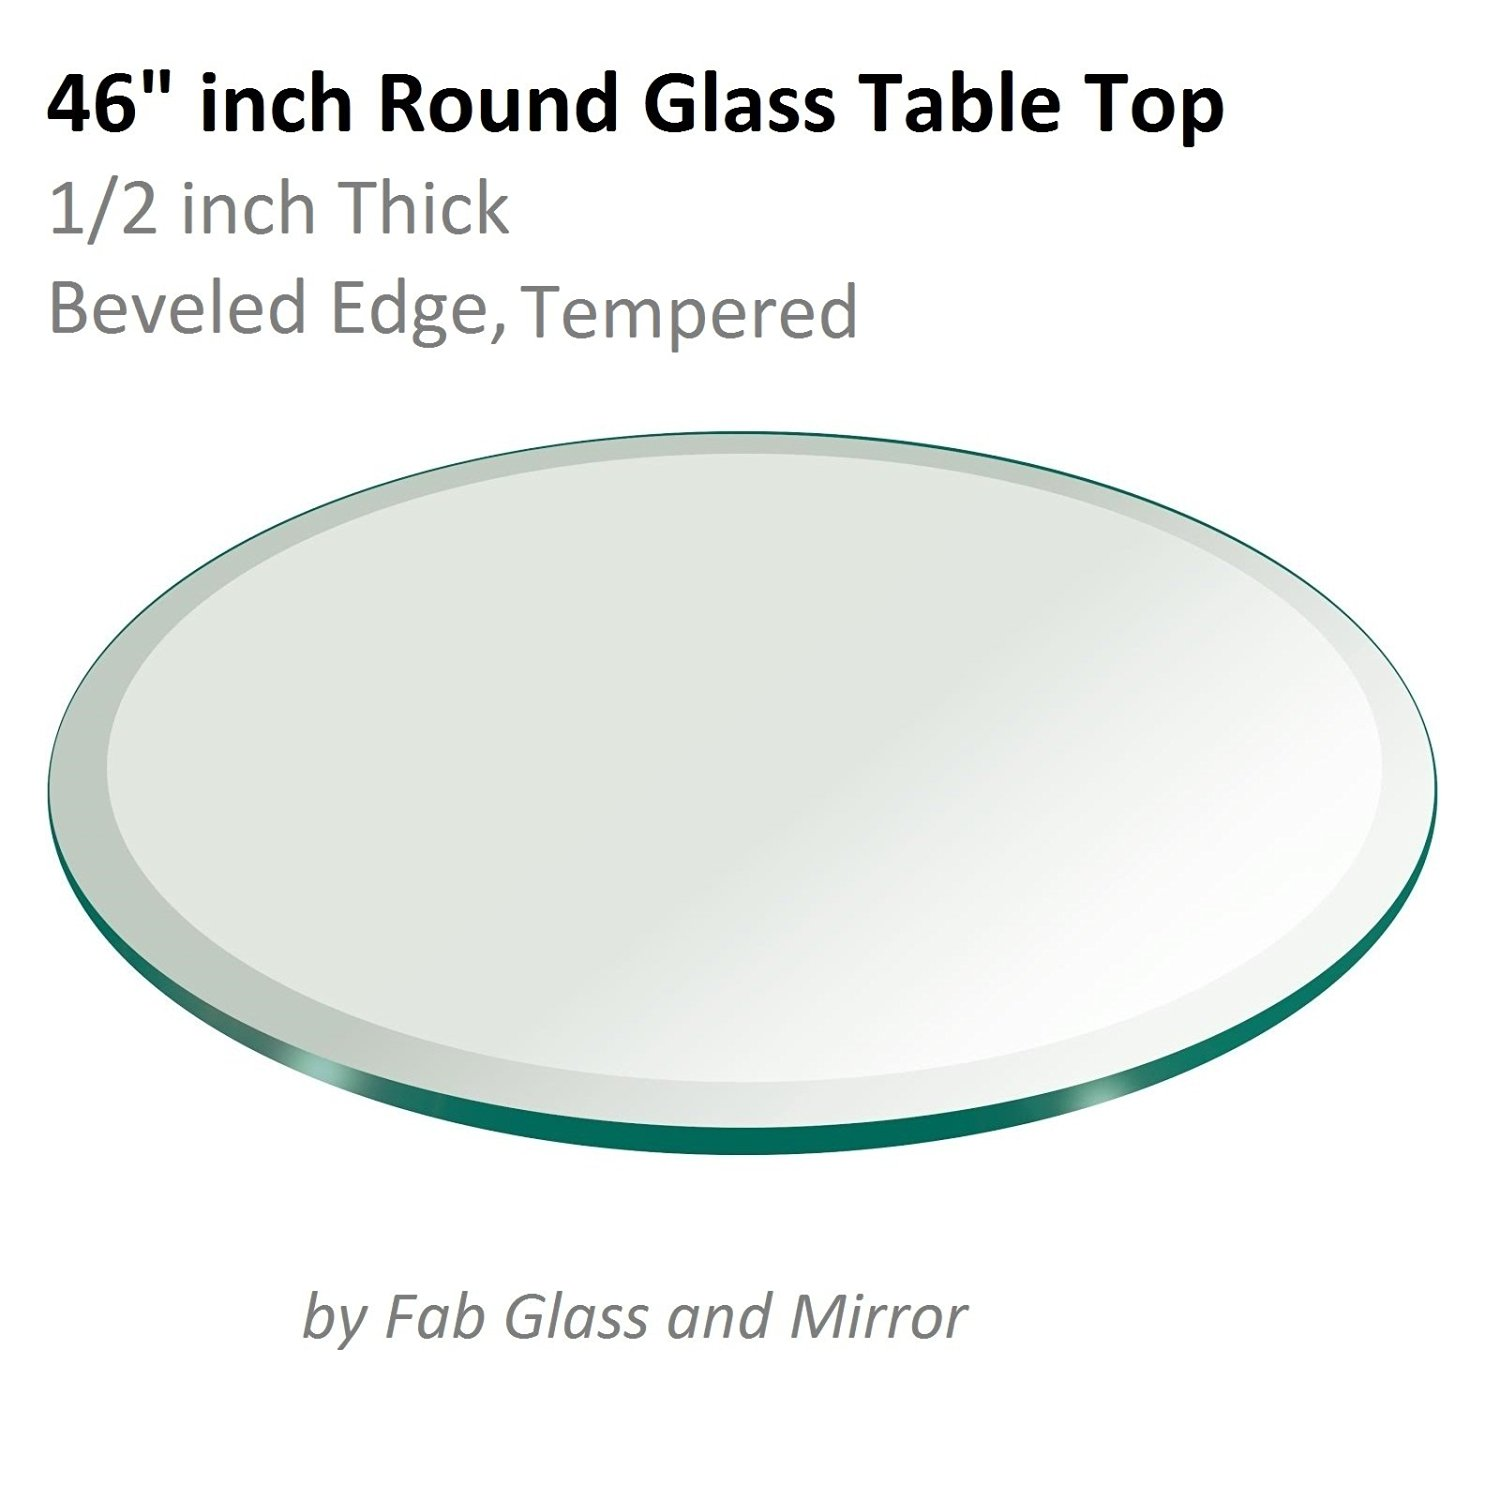 Fab Gl And Mirror 1 2 Thick Beveled Tempered Round Table Top 46 In Price On M Alibaba